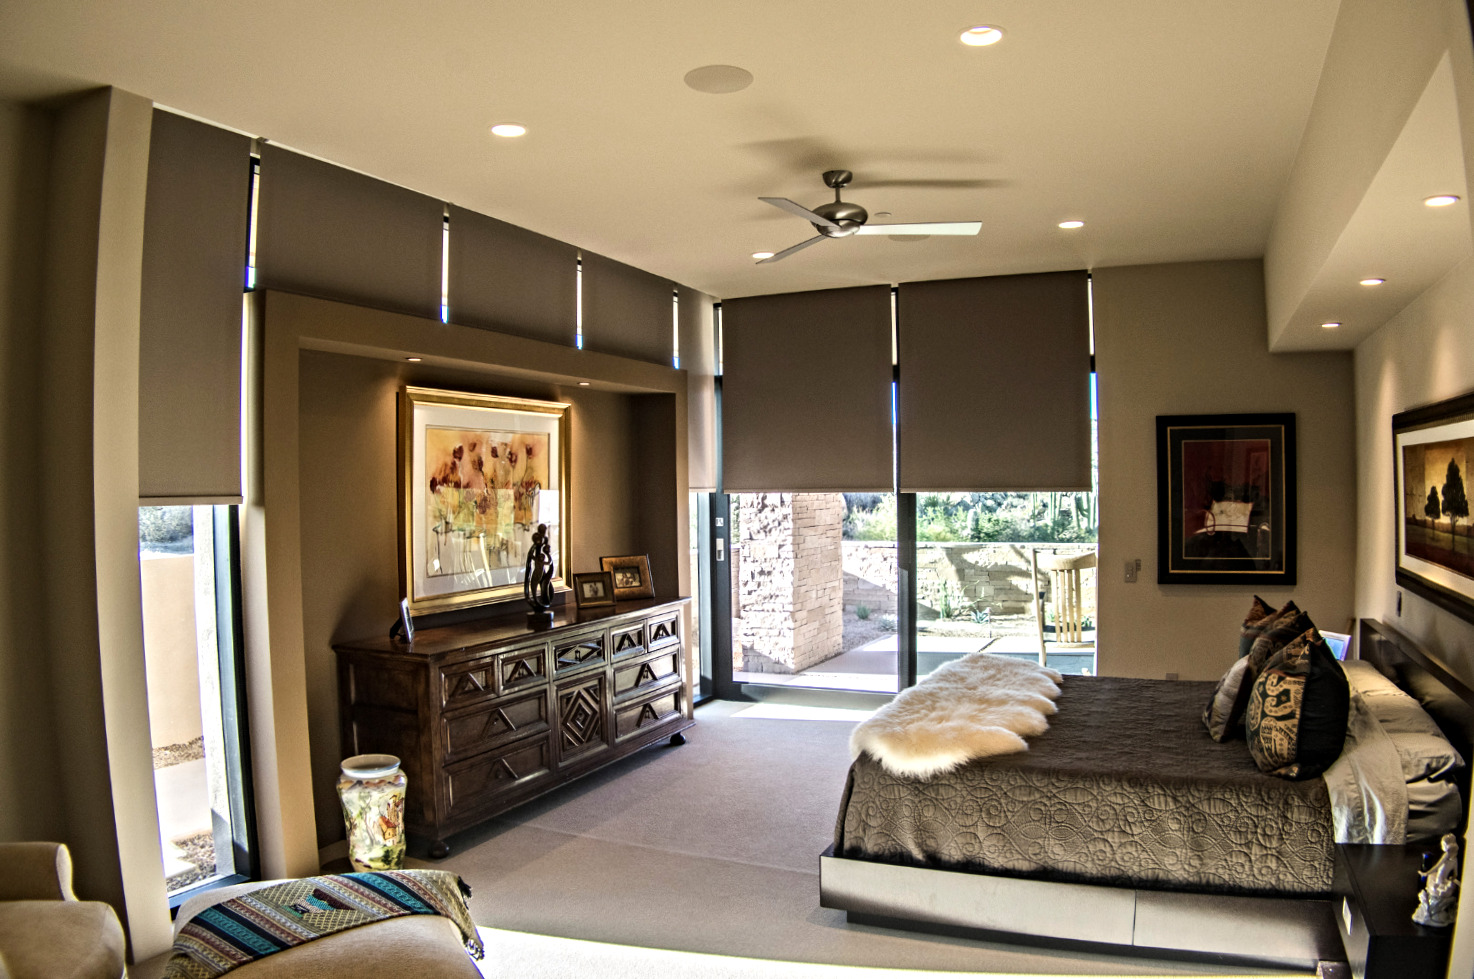 Bedroom with motorized shades